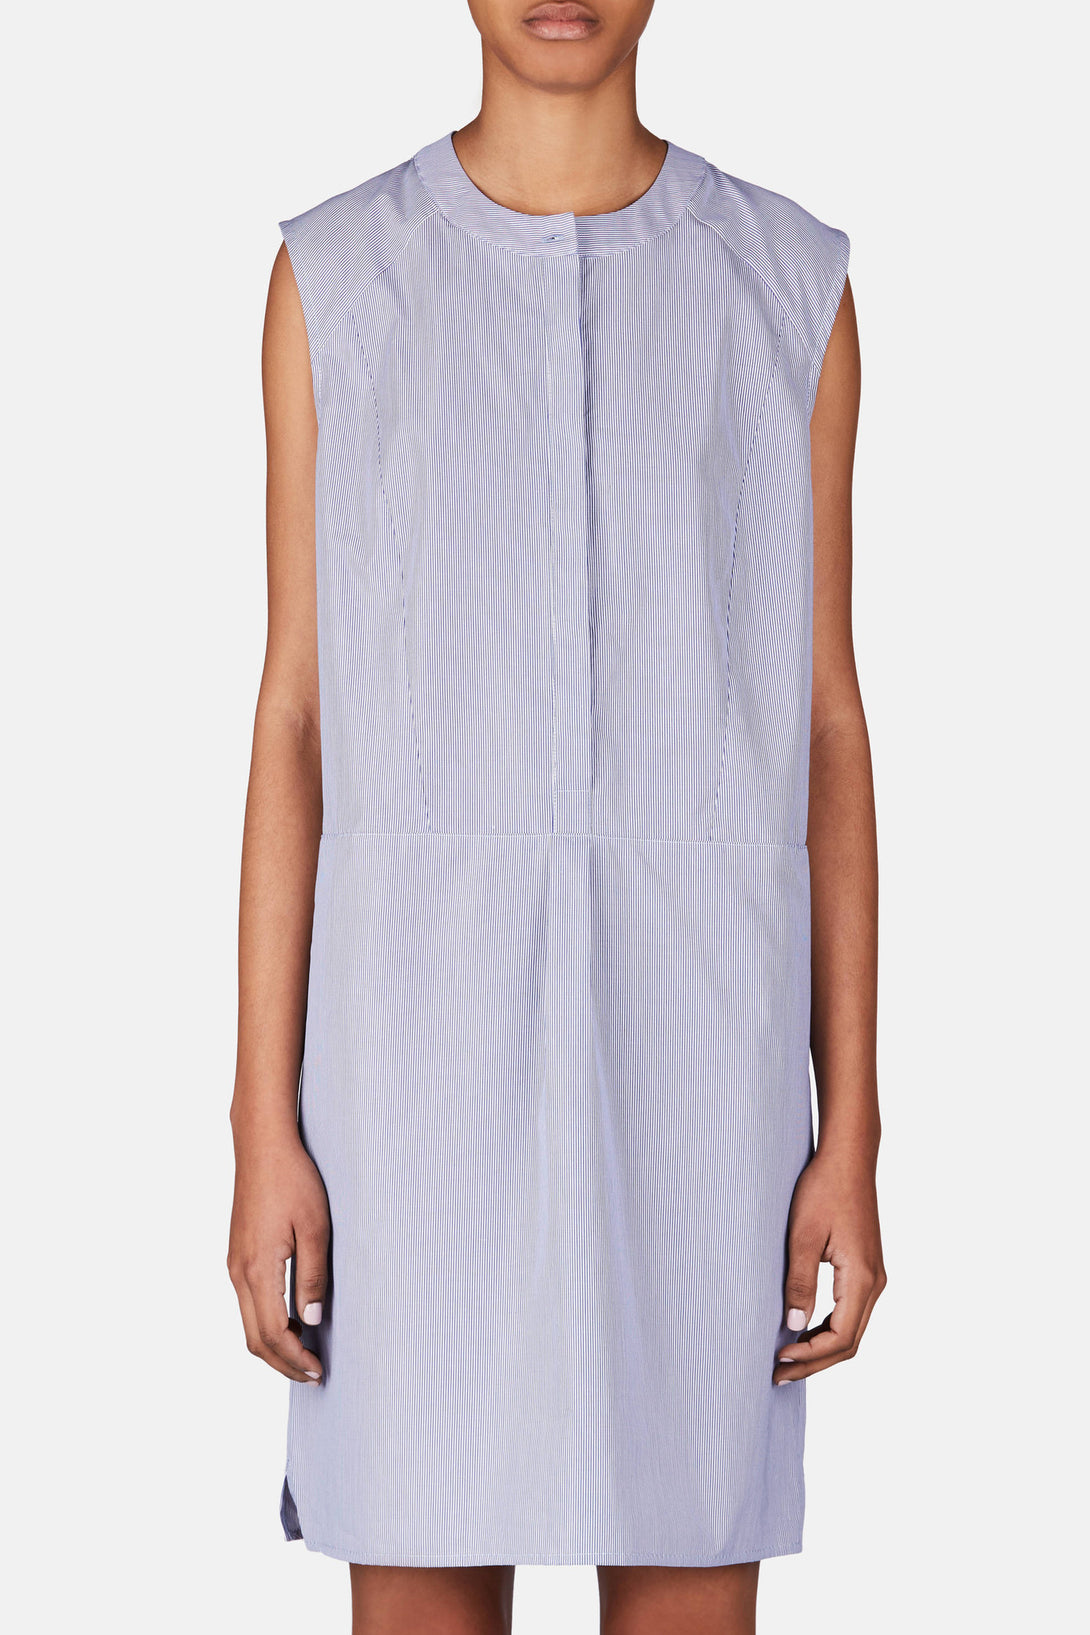 Sleeveless Shirt Dress - Navy/White